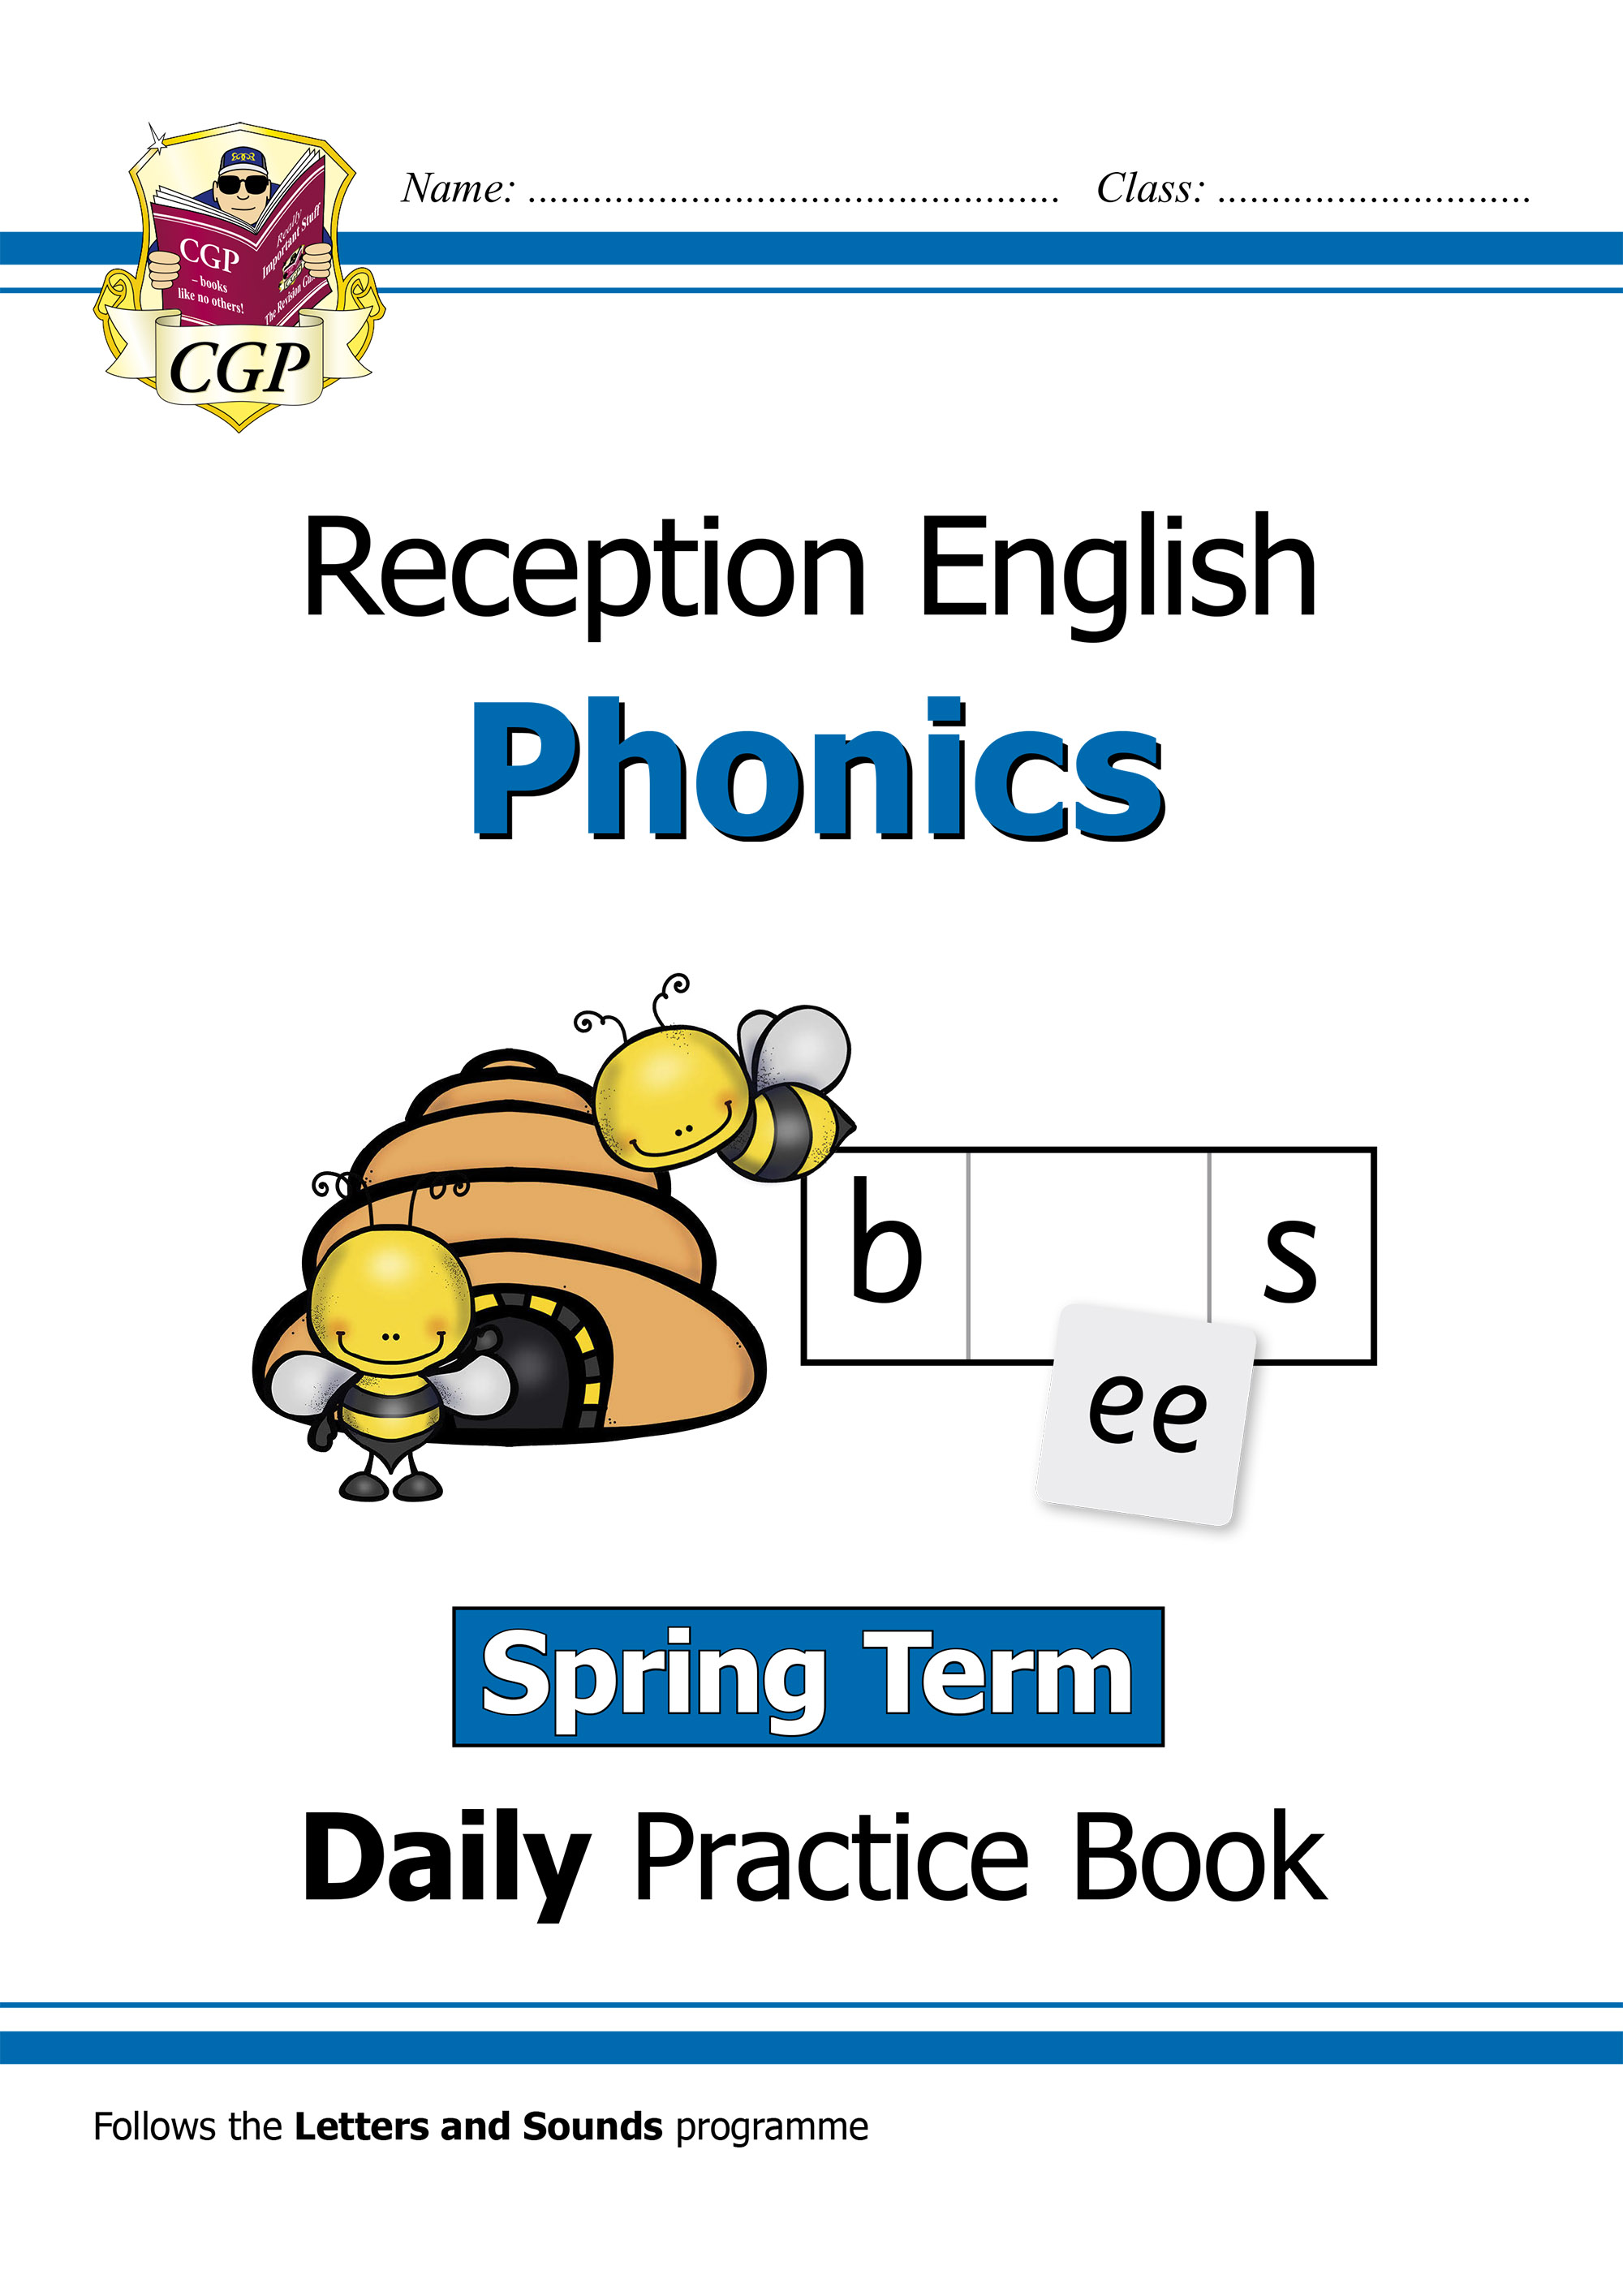 EROWSP11D - New Phonics Daily Practice Book: Reception - Spring Term Online Edition